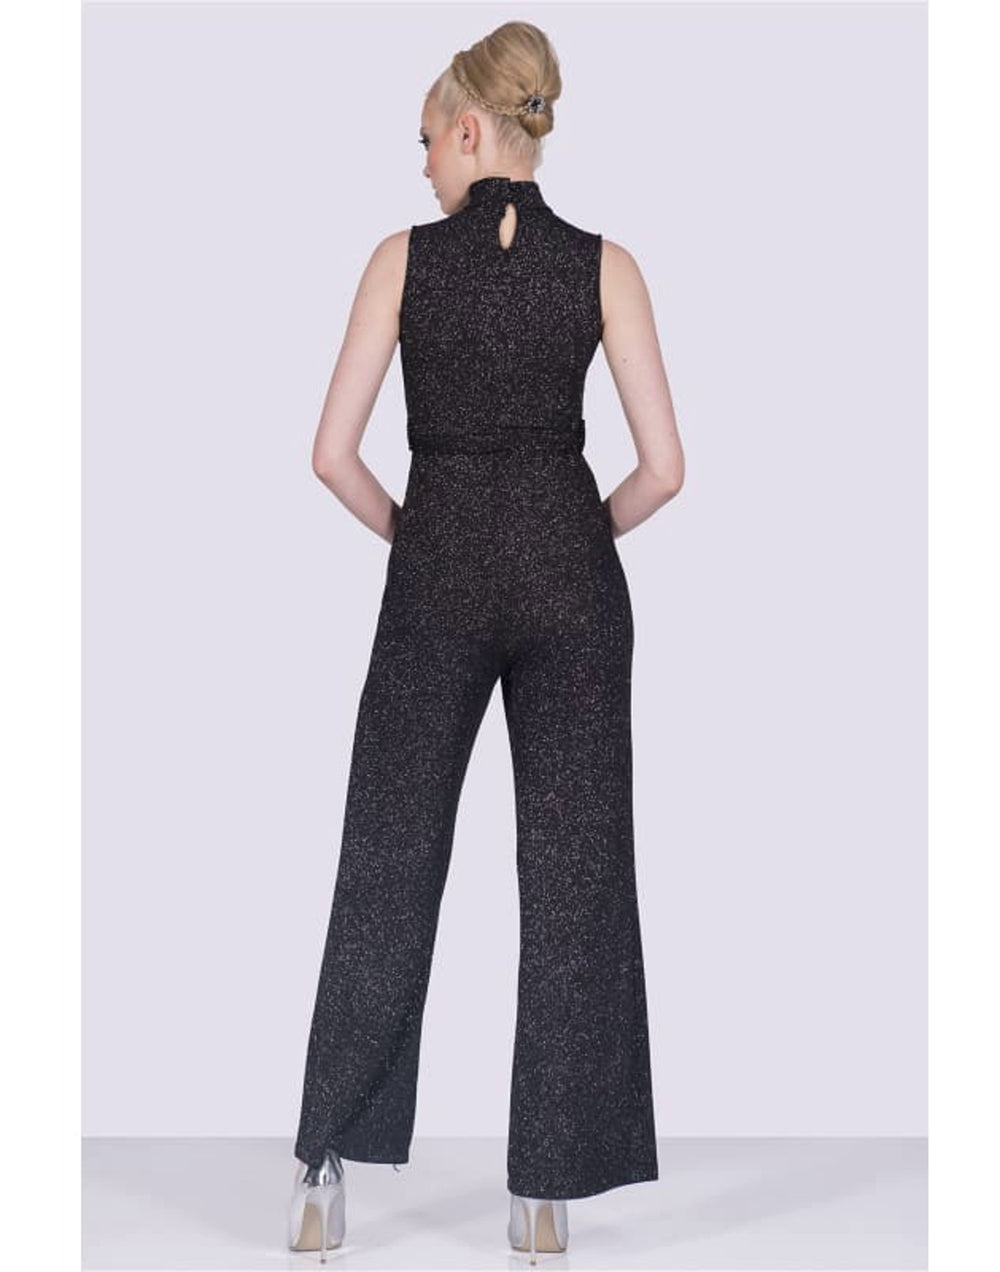 Sleeveless Halter Neck Jumpsuit - Back View